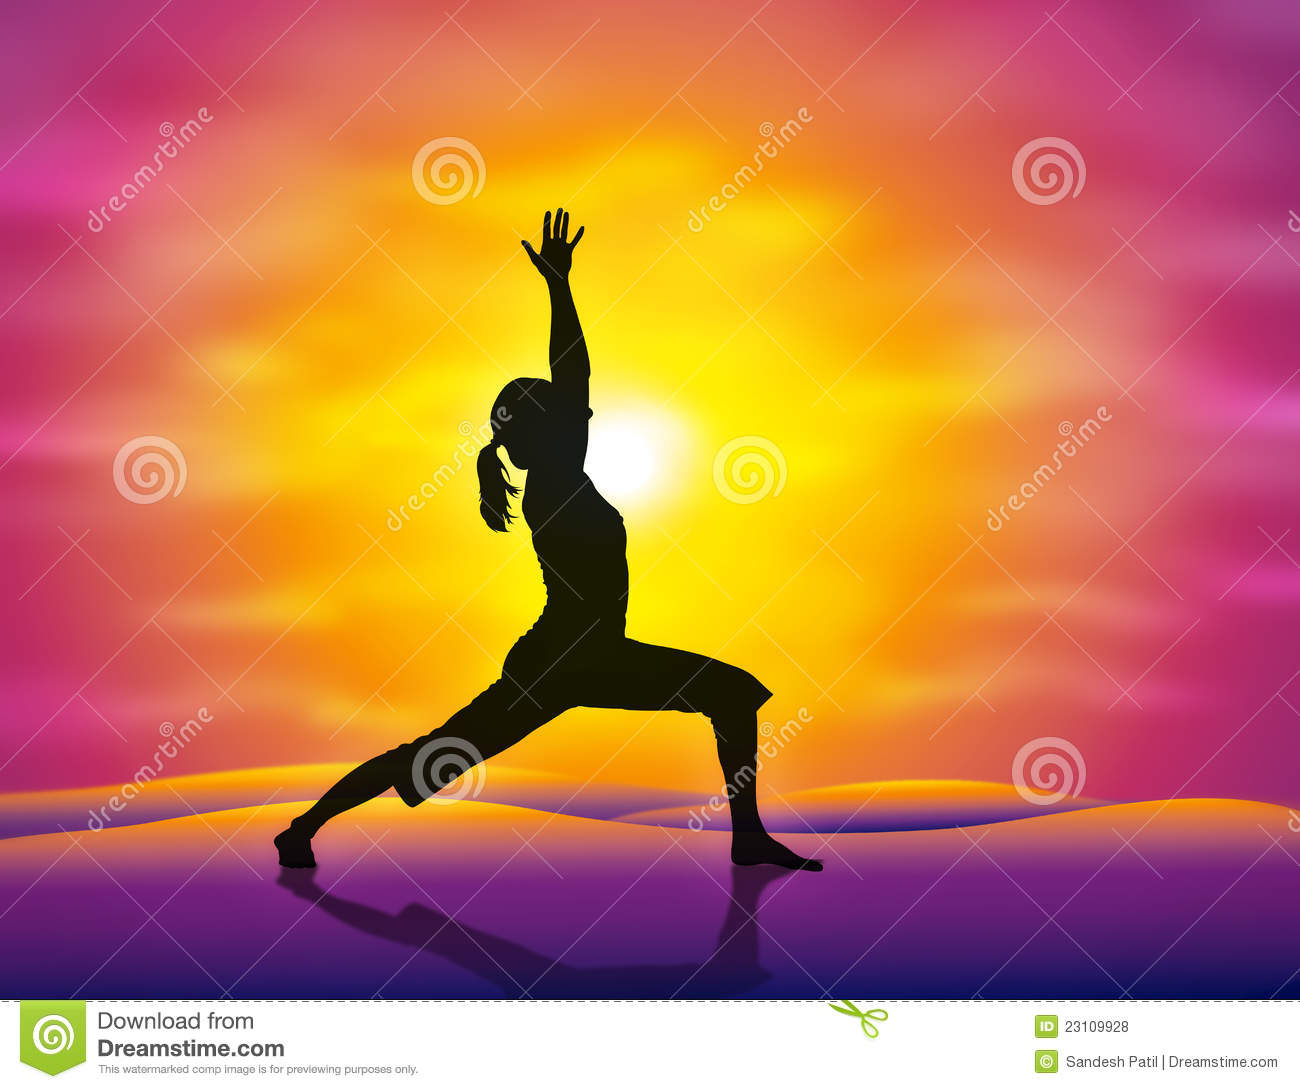 girl practicing yoga in the sunset. Vector illustration.